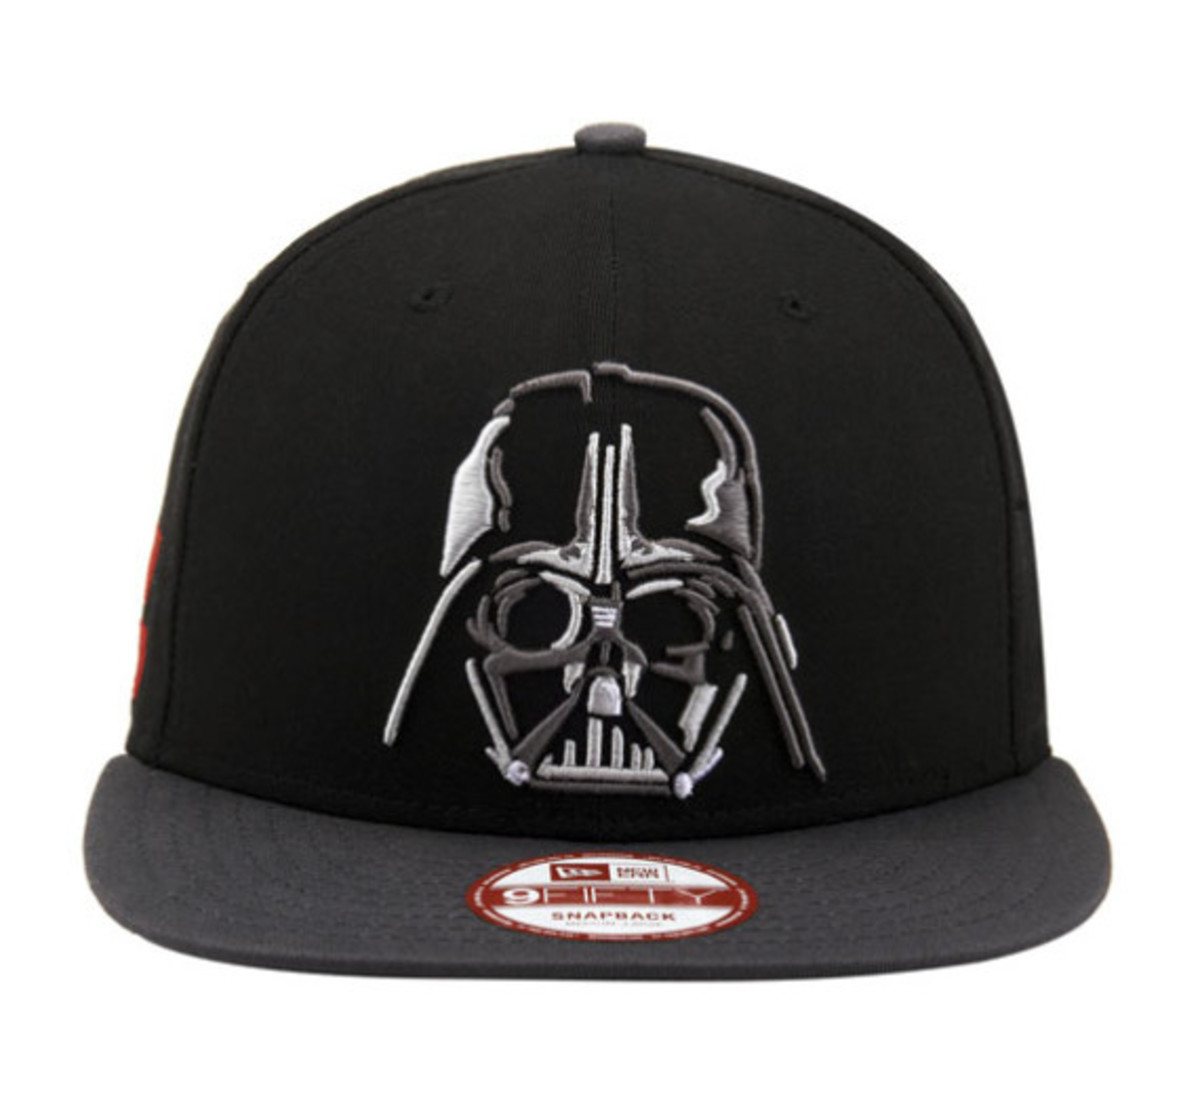 Star Wars x New Era 9FIFTY Snapback Cap Collection - 2